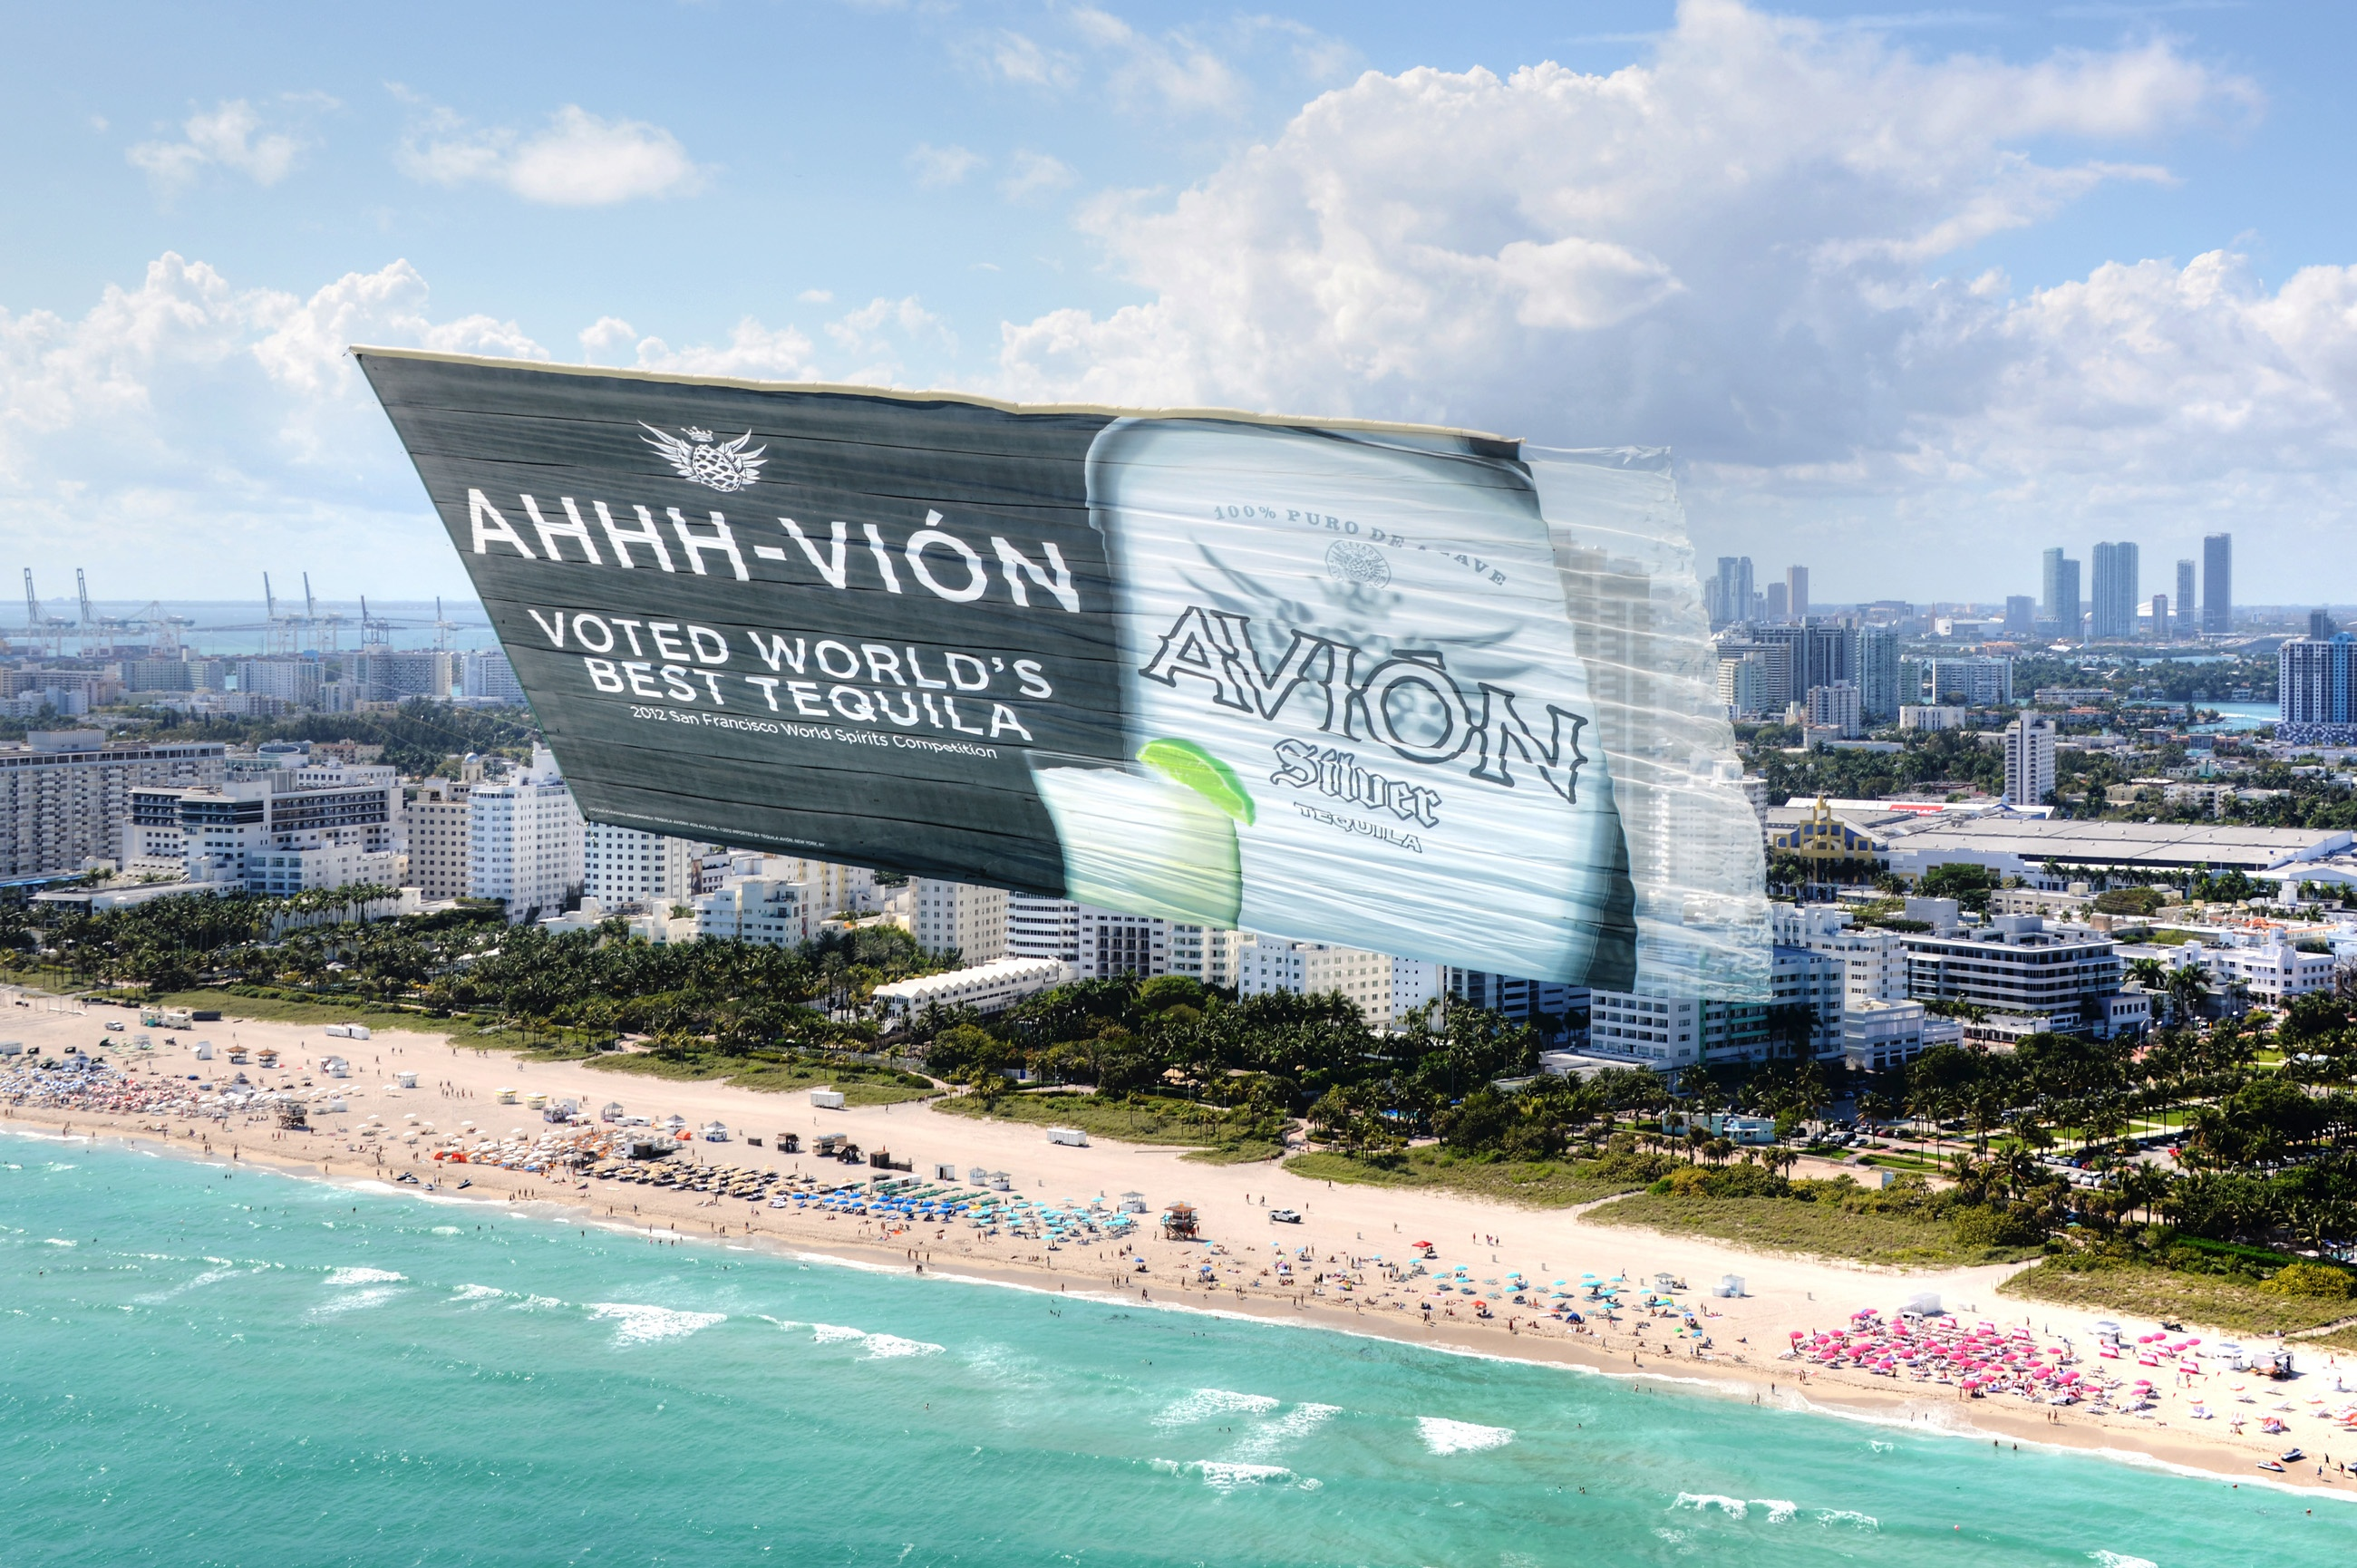 Avion Miami Beach.jpg